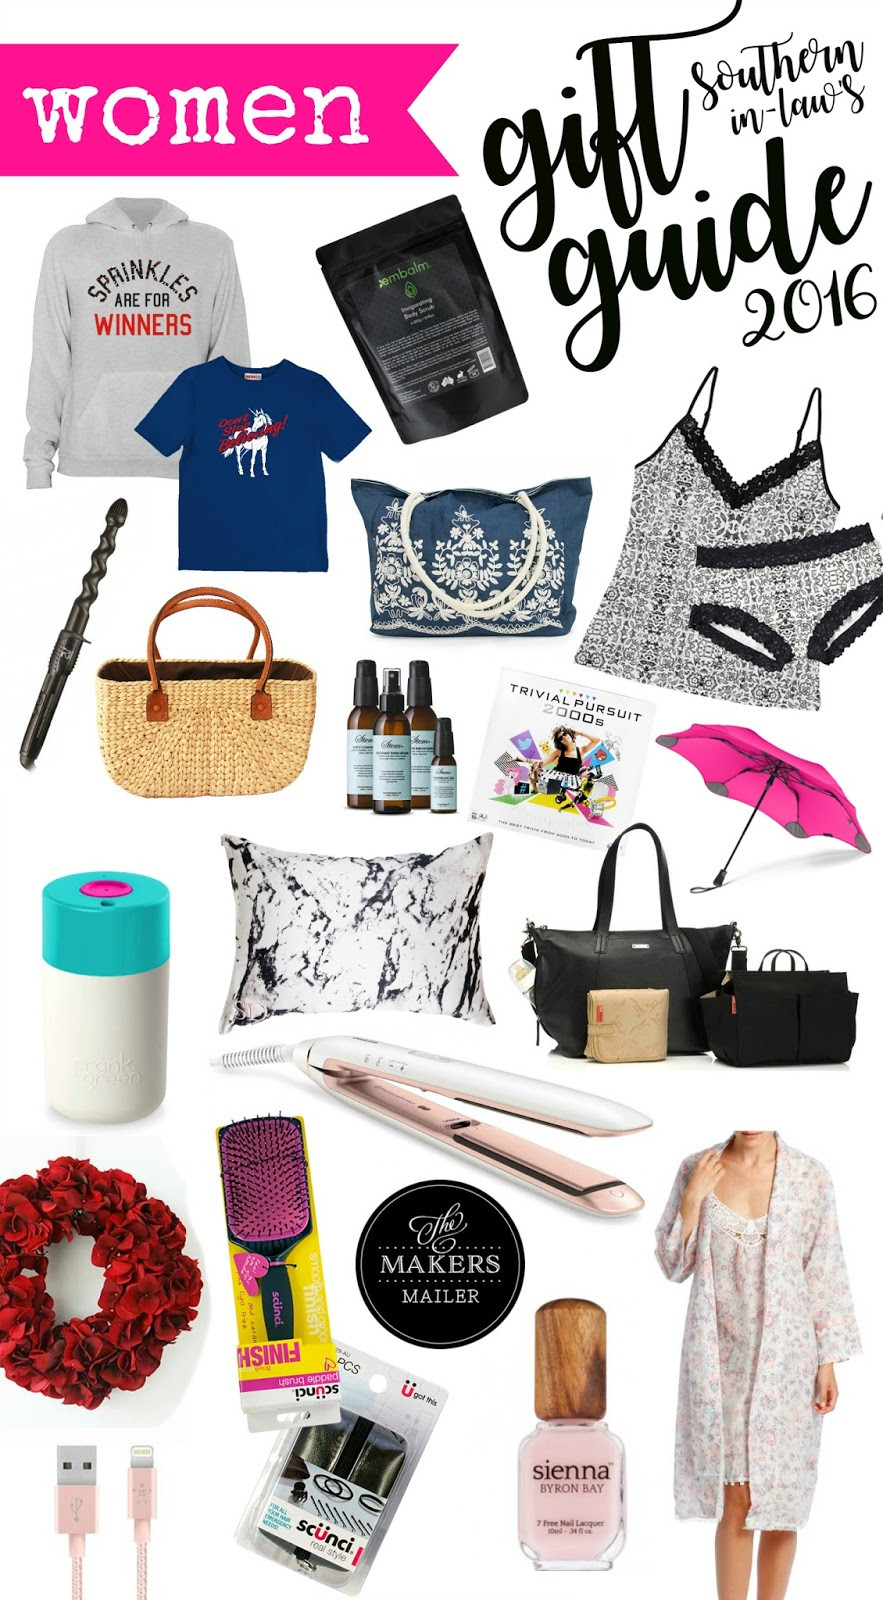 Gift Ideas For Girlfriend Christmas  Southern In Law 2016 Women s Christmas Gift Guide